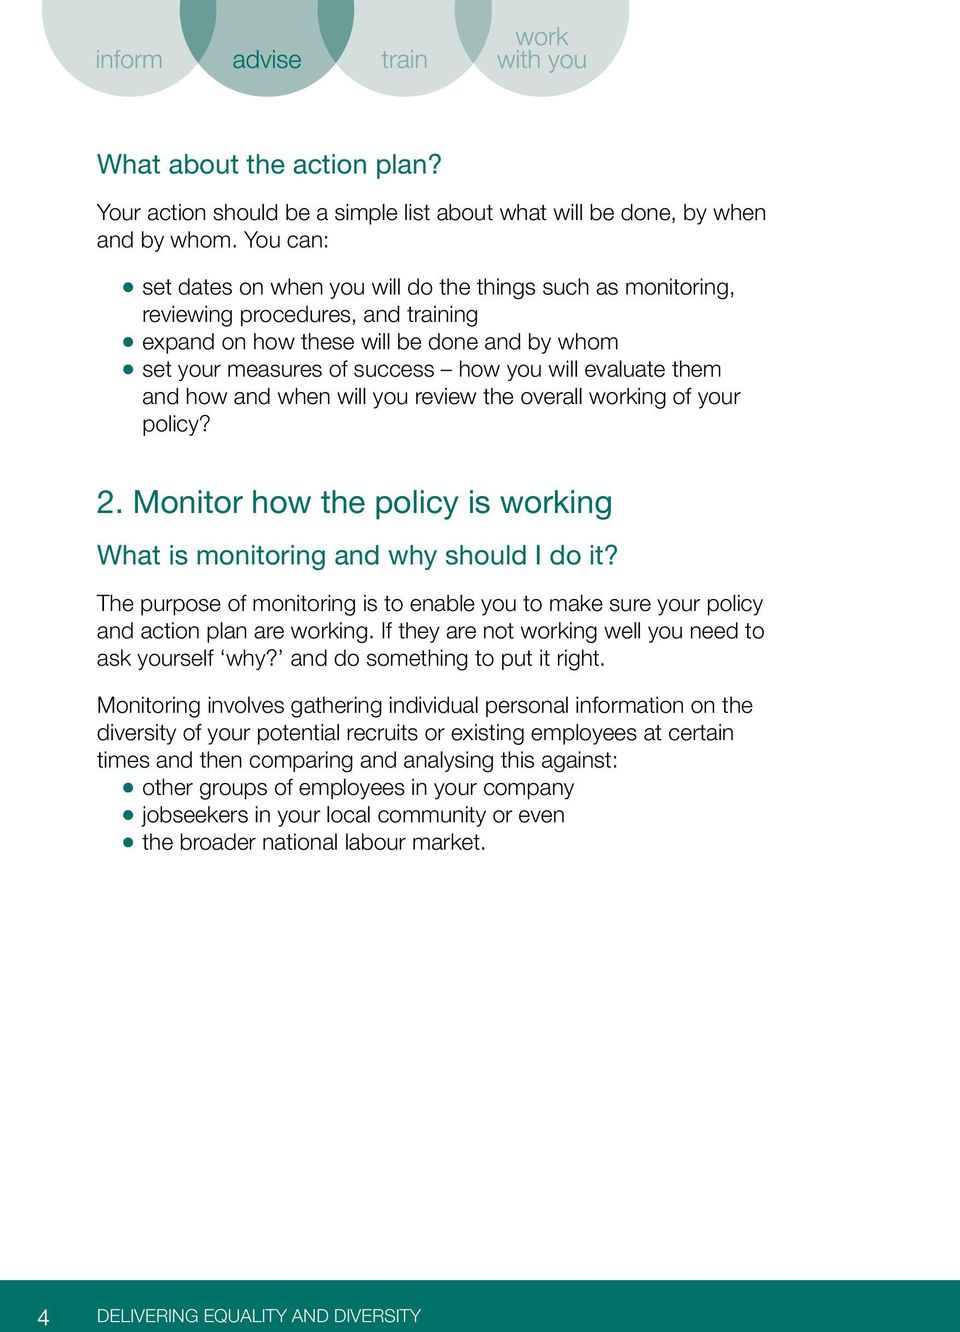 evaluate them and how and when will you review the overall working of your policy? 2. Monitor how the policy is working What is monitoring and why should I do it?